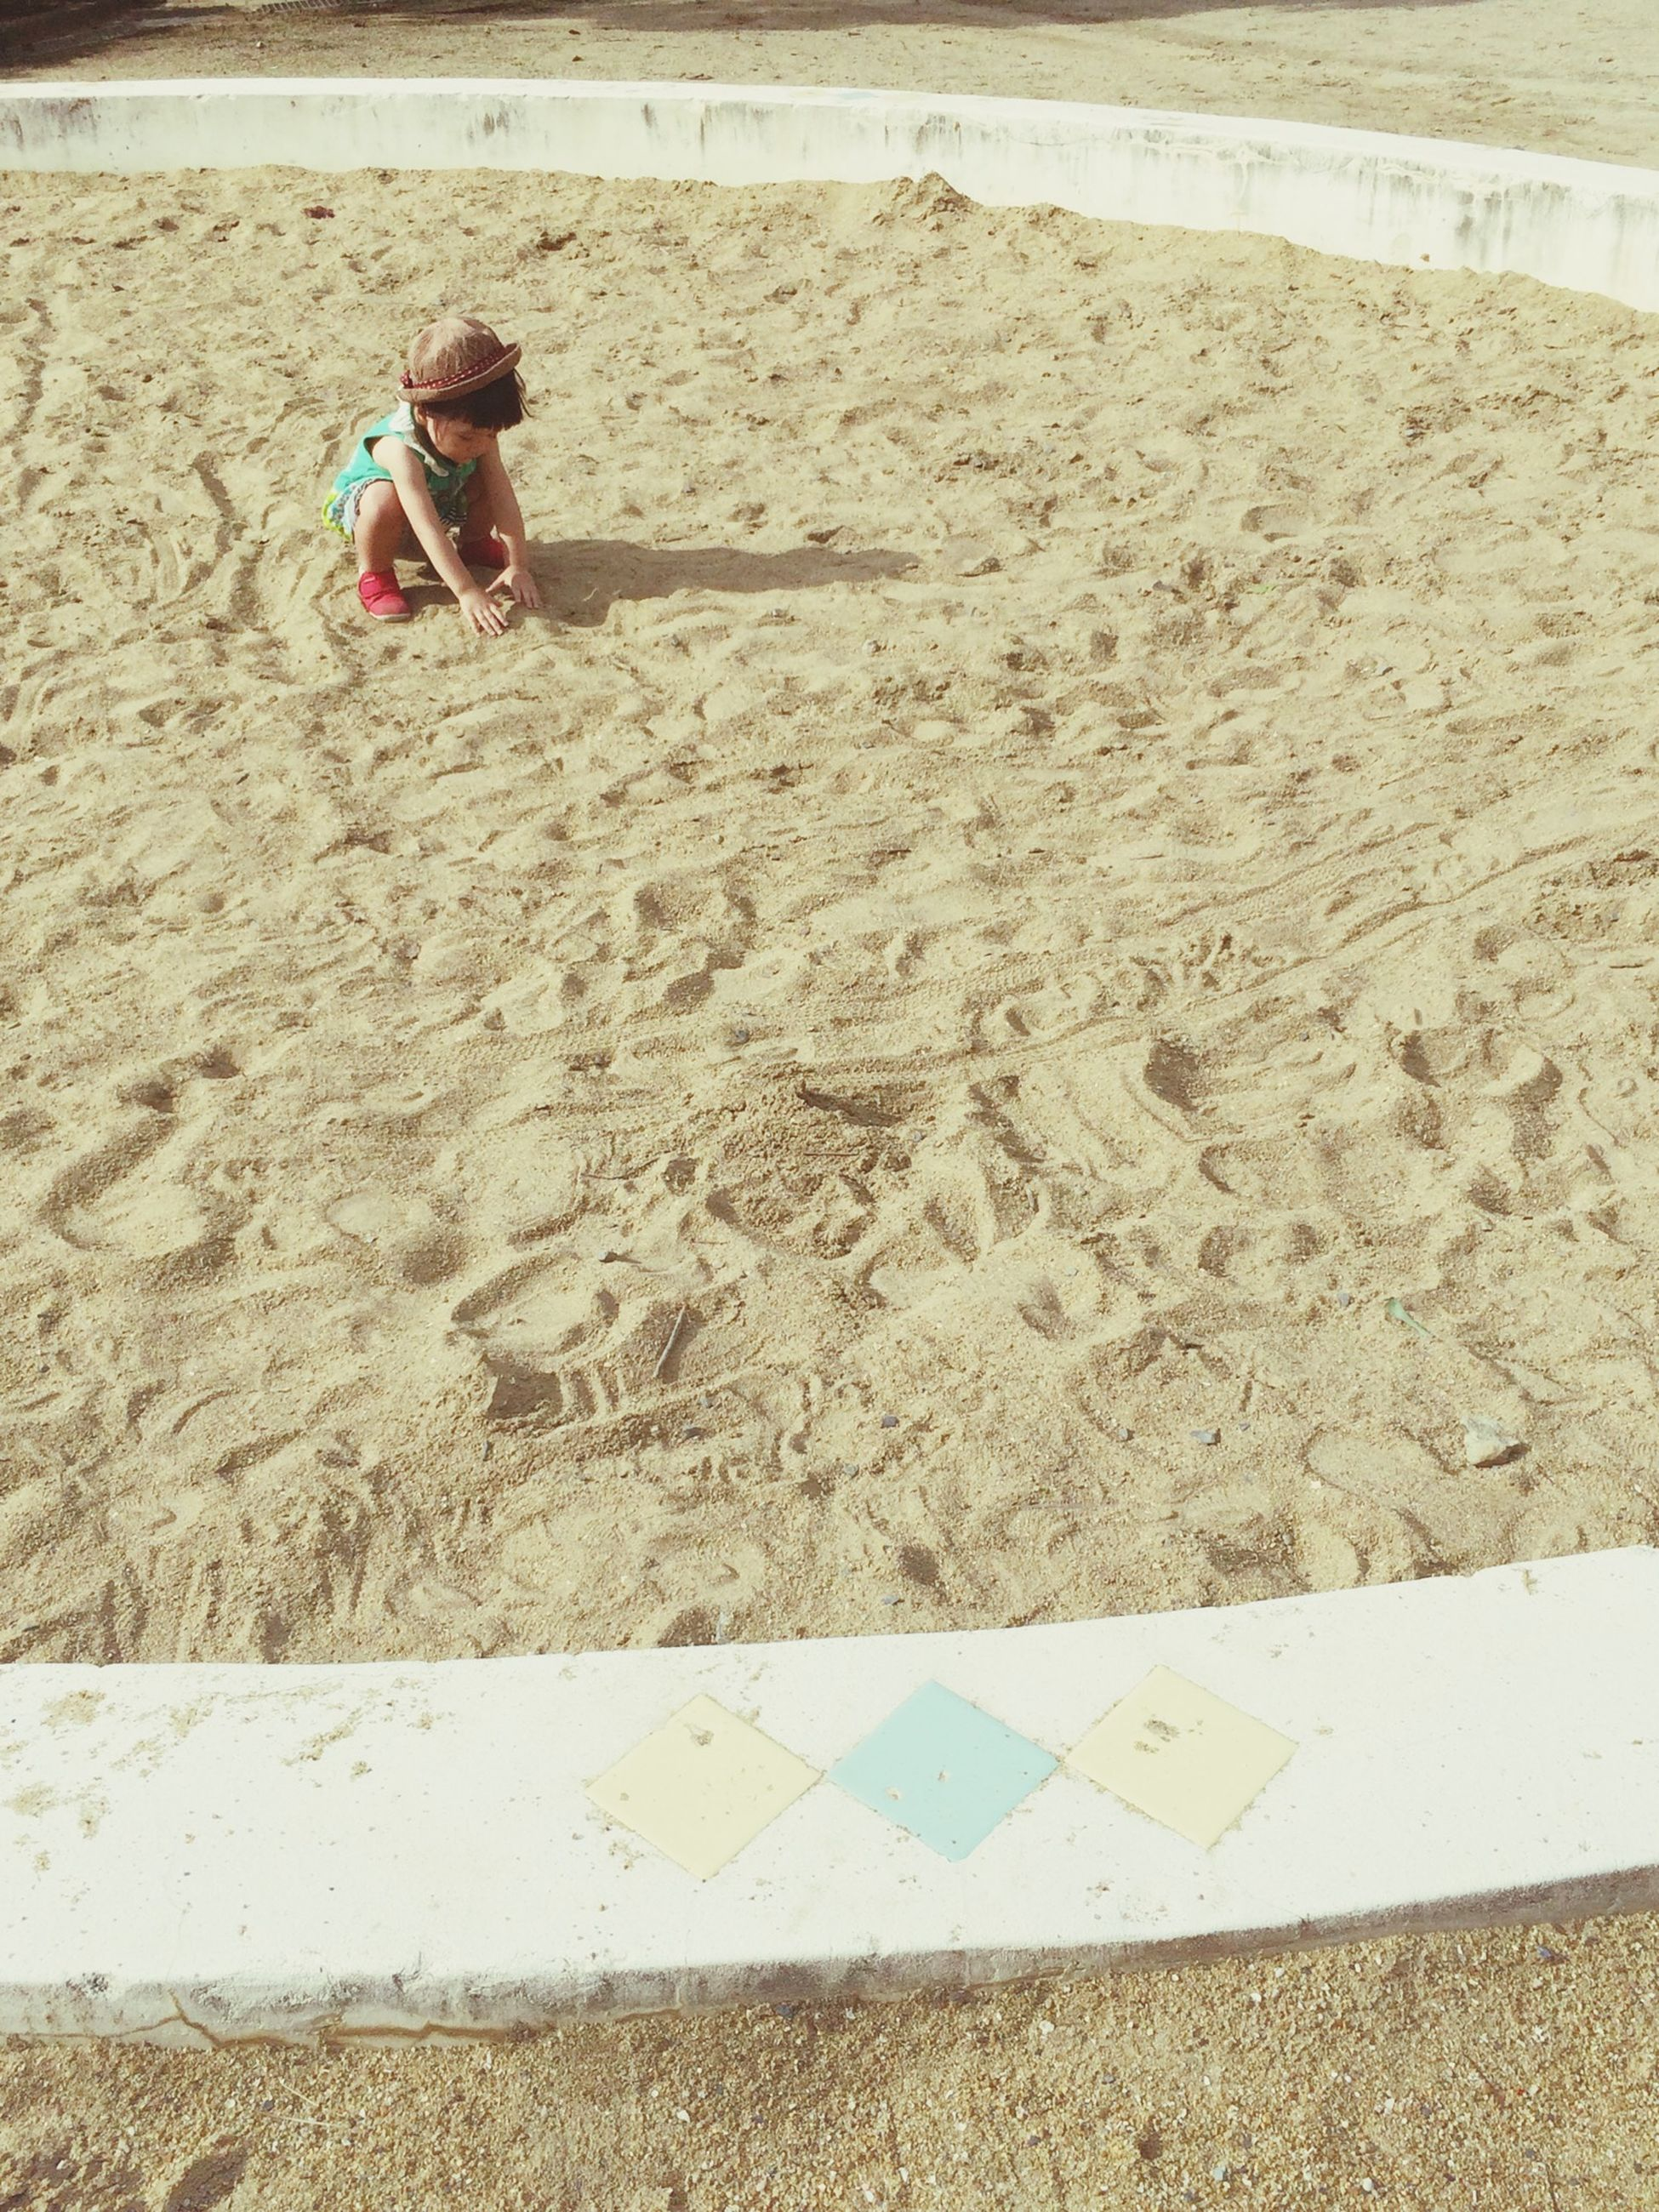 sand, lifestyles, leisure activity, full length, beach, casual clothing, childhood, sunlight, high angle view, day, street, shadow, outdoors, boys, shore, walking, men, road